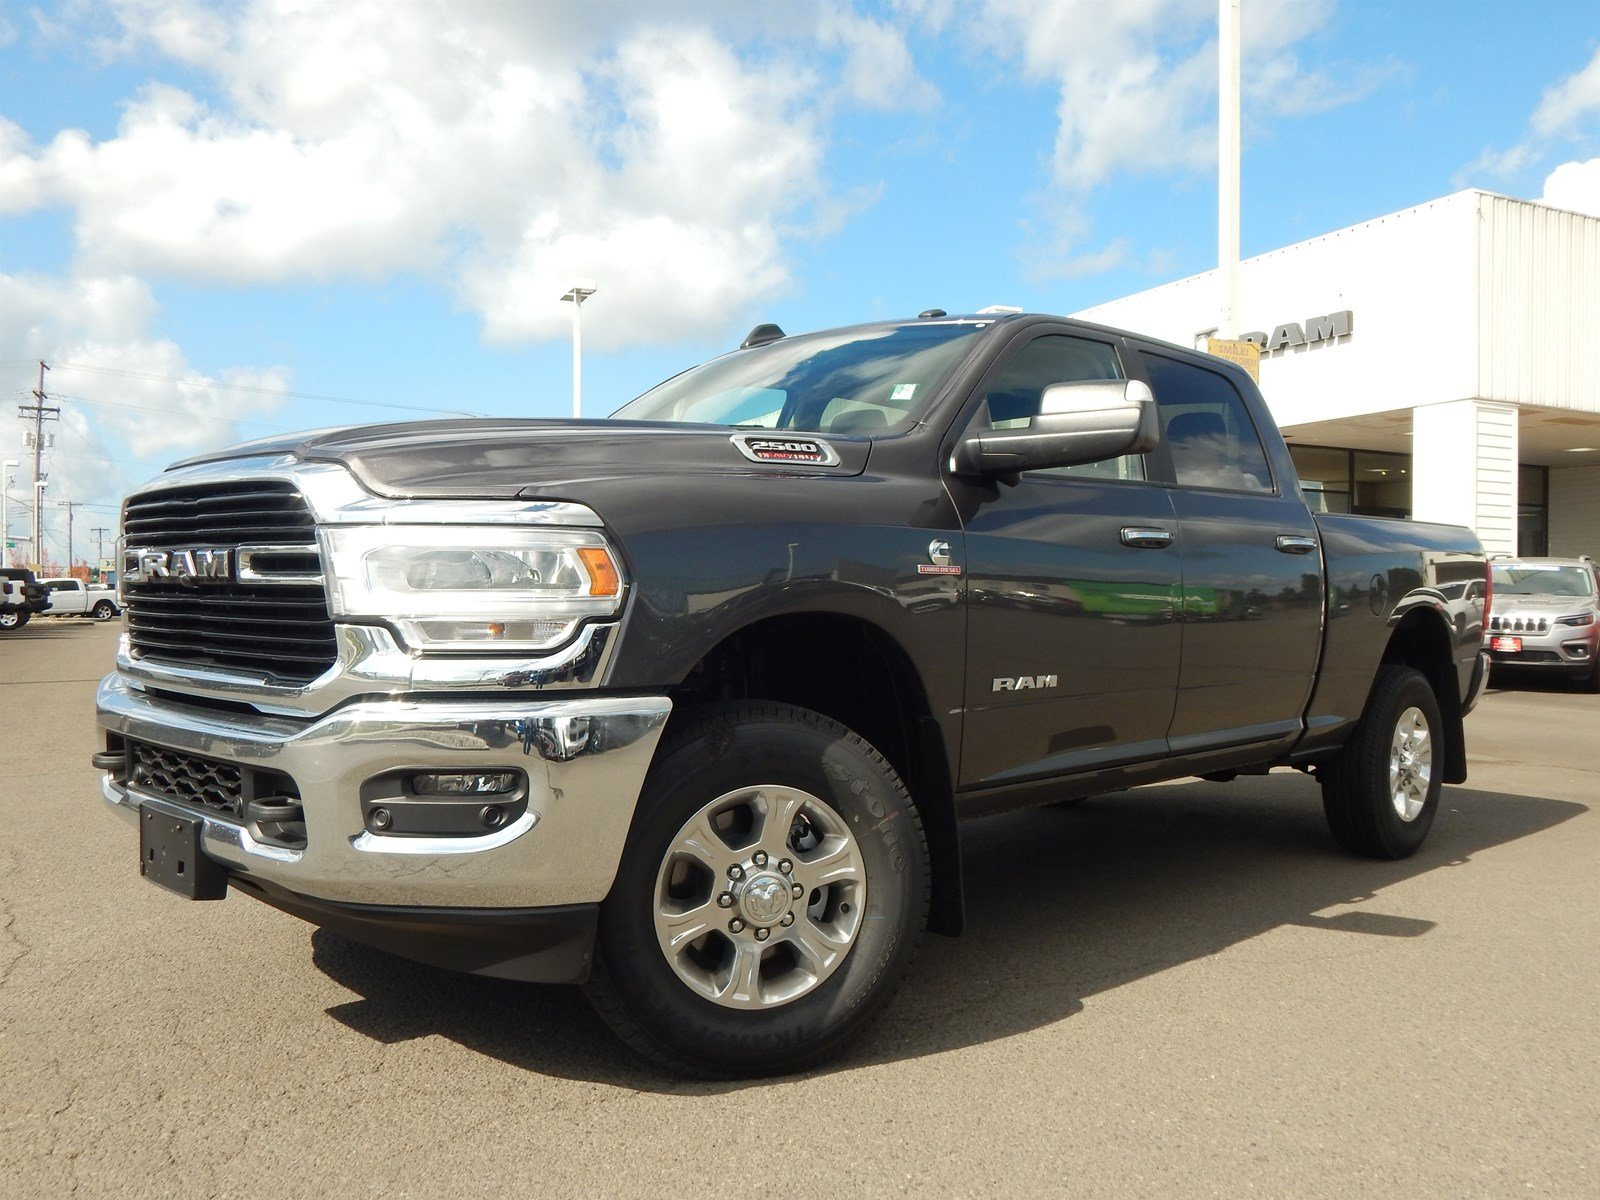 2019 Ram 2500 Crew Cab 4x4, Pickup #R1794 - photo 1